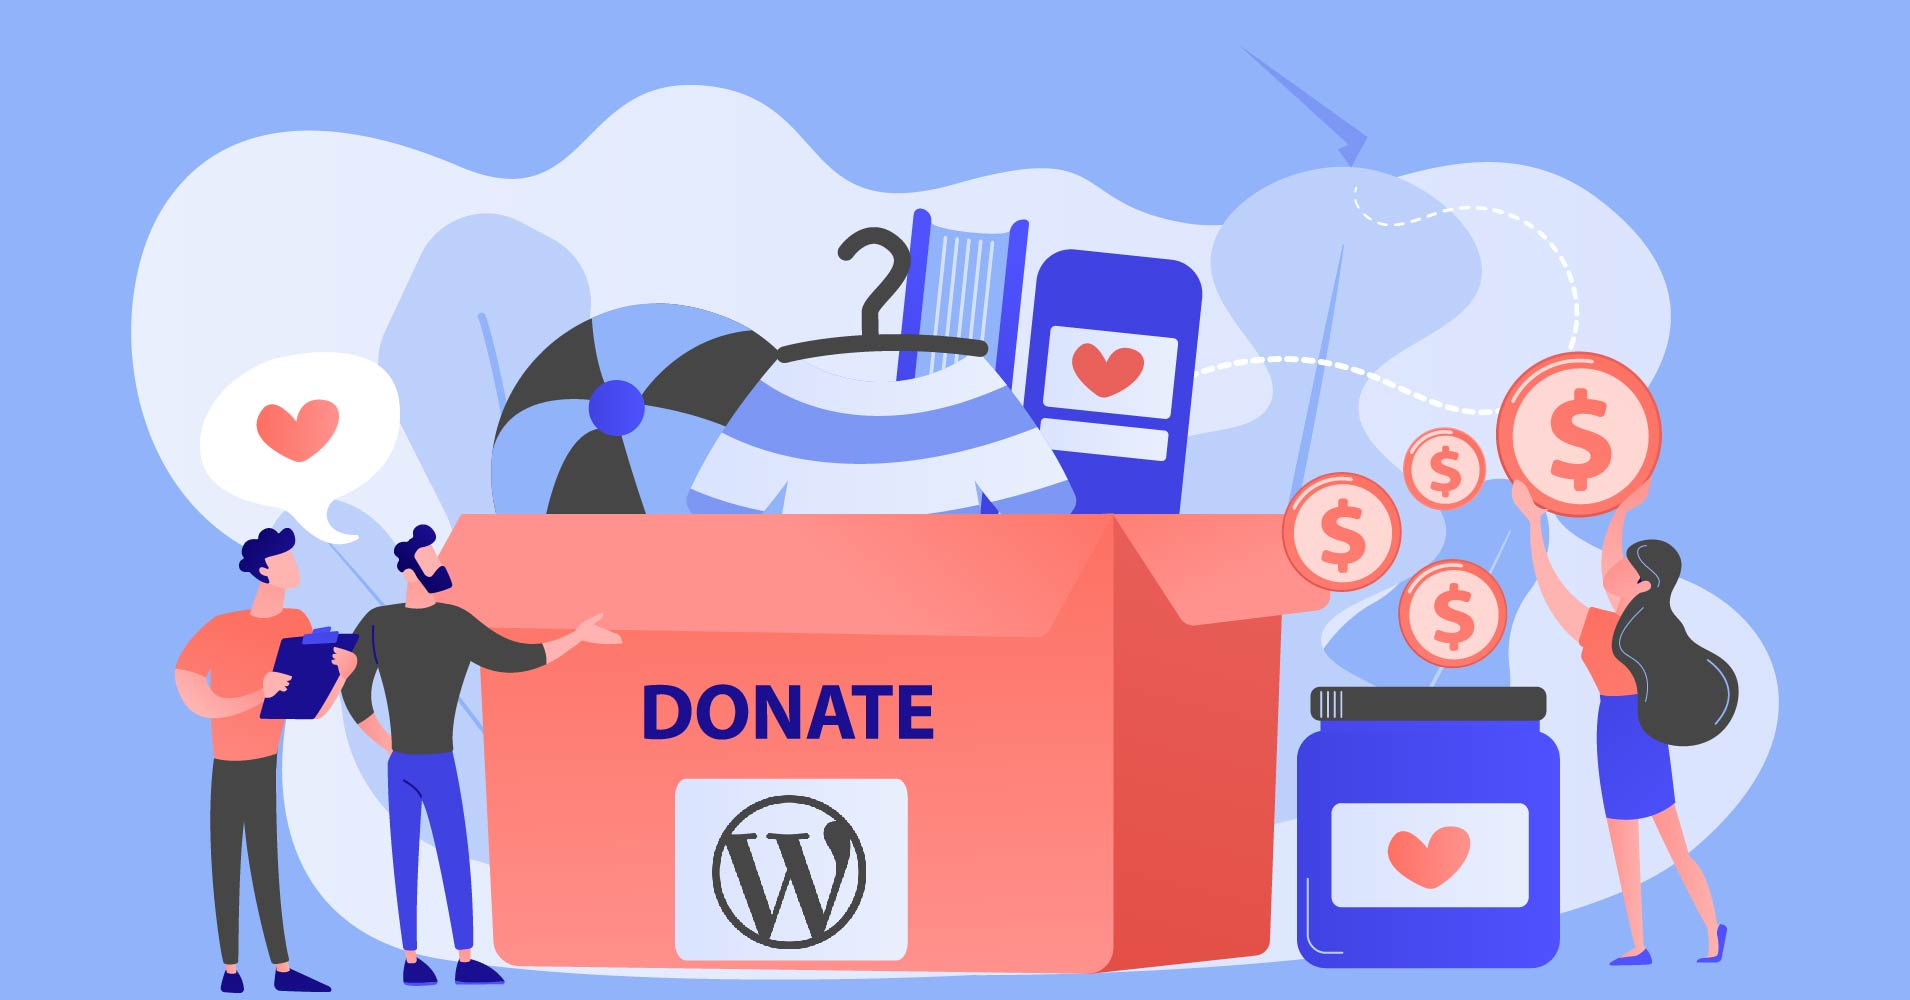 How to accept donations in WordPress